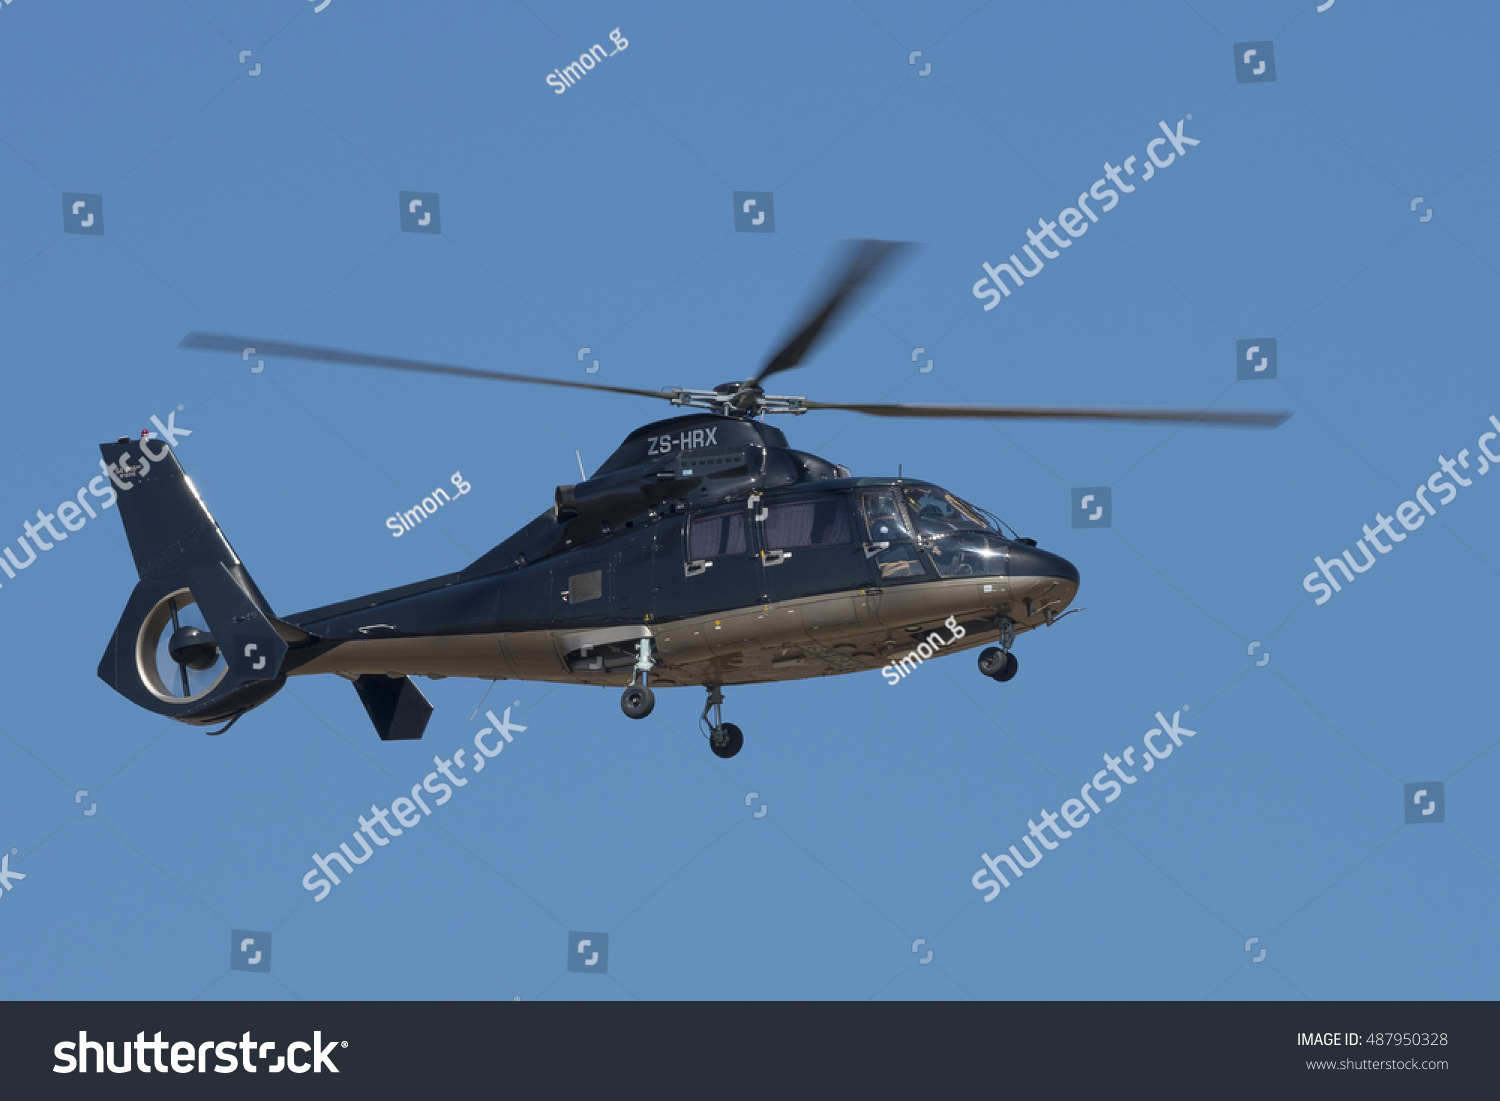 Germiston South AfricaAugust 21 2016 A Dauphin Business Helicopter Flies P